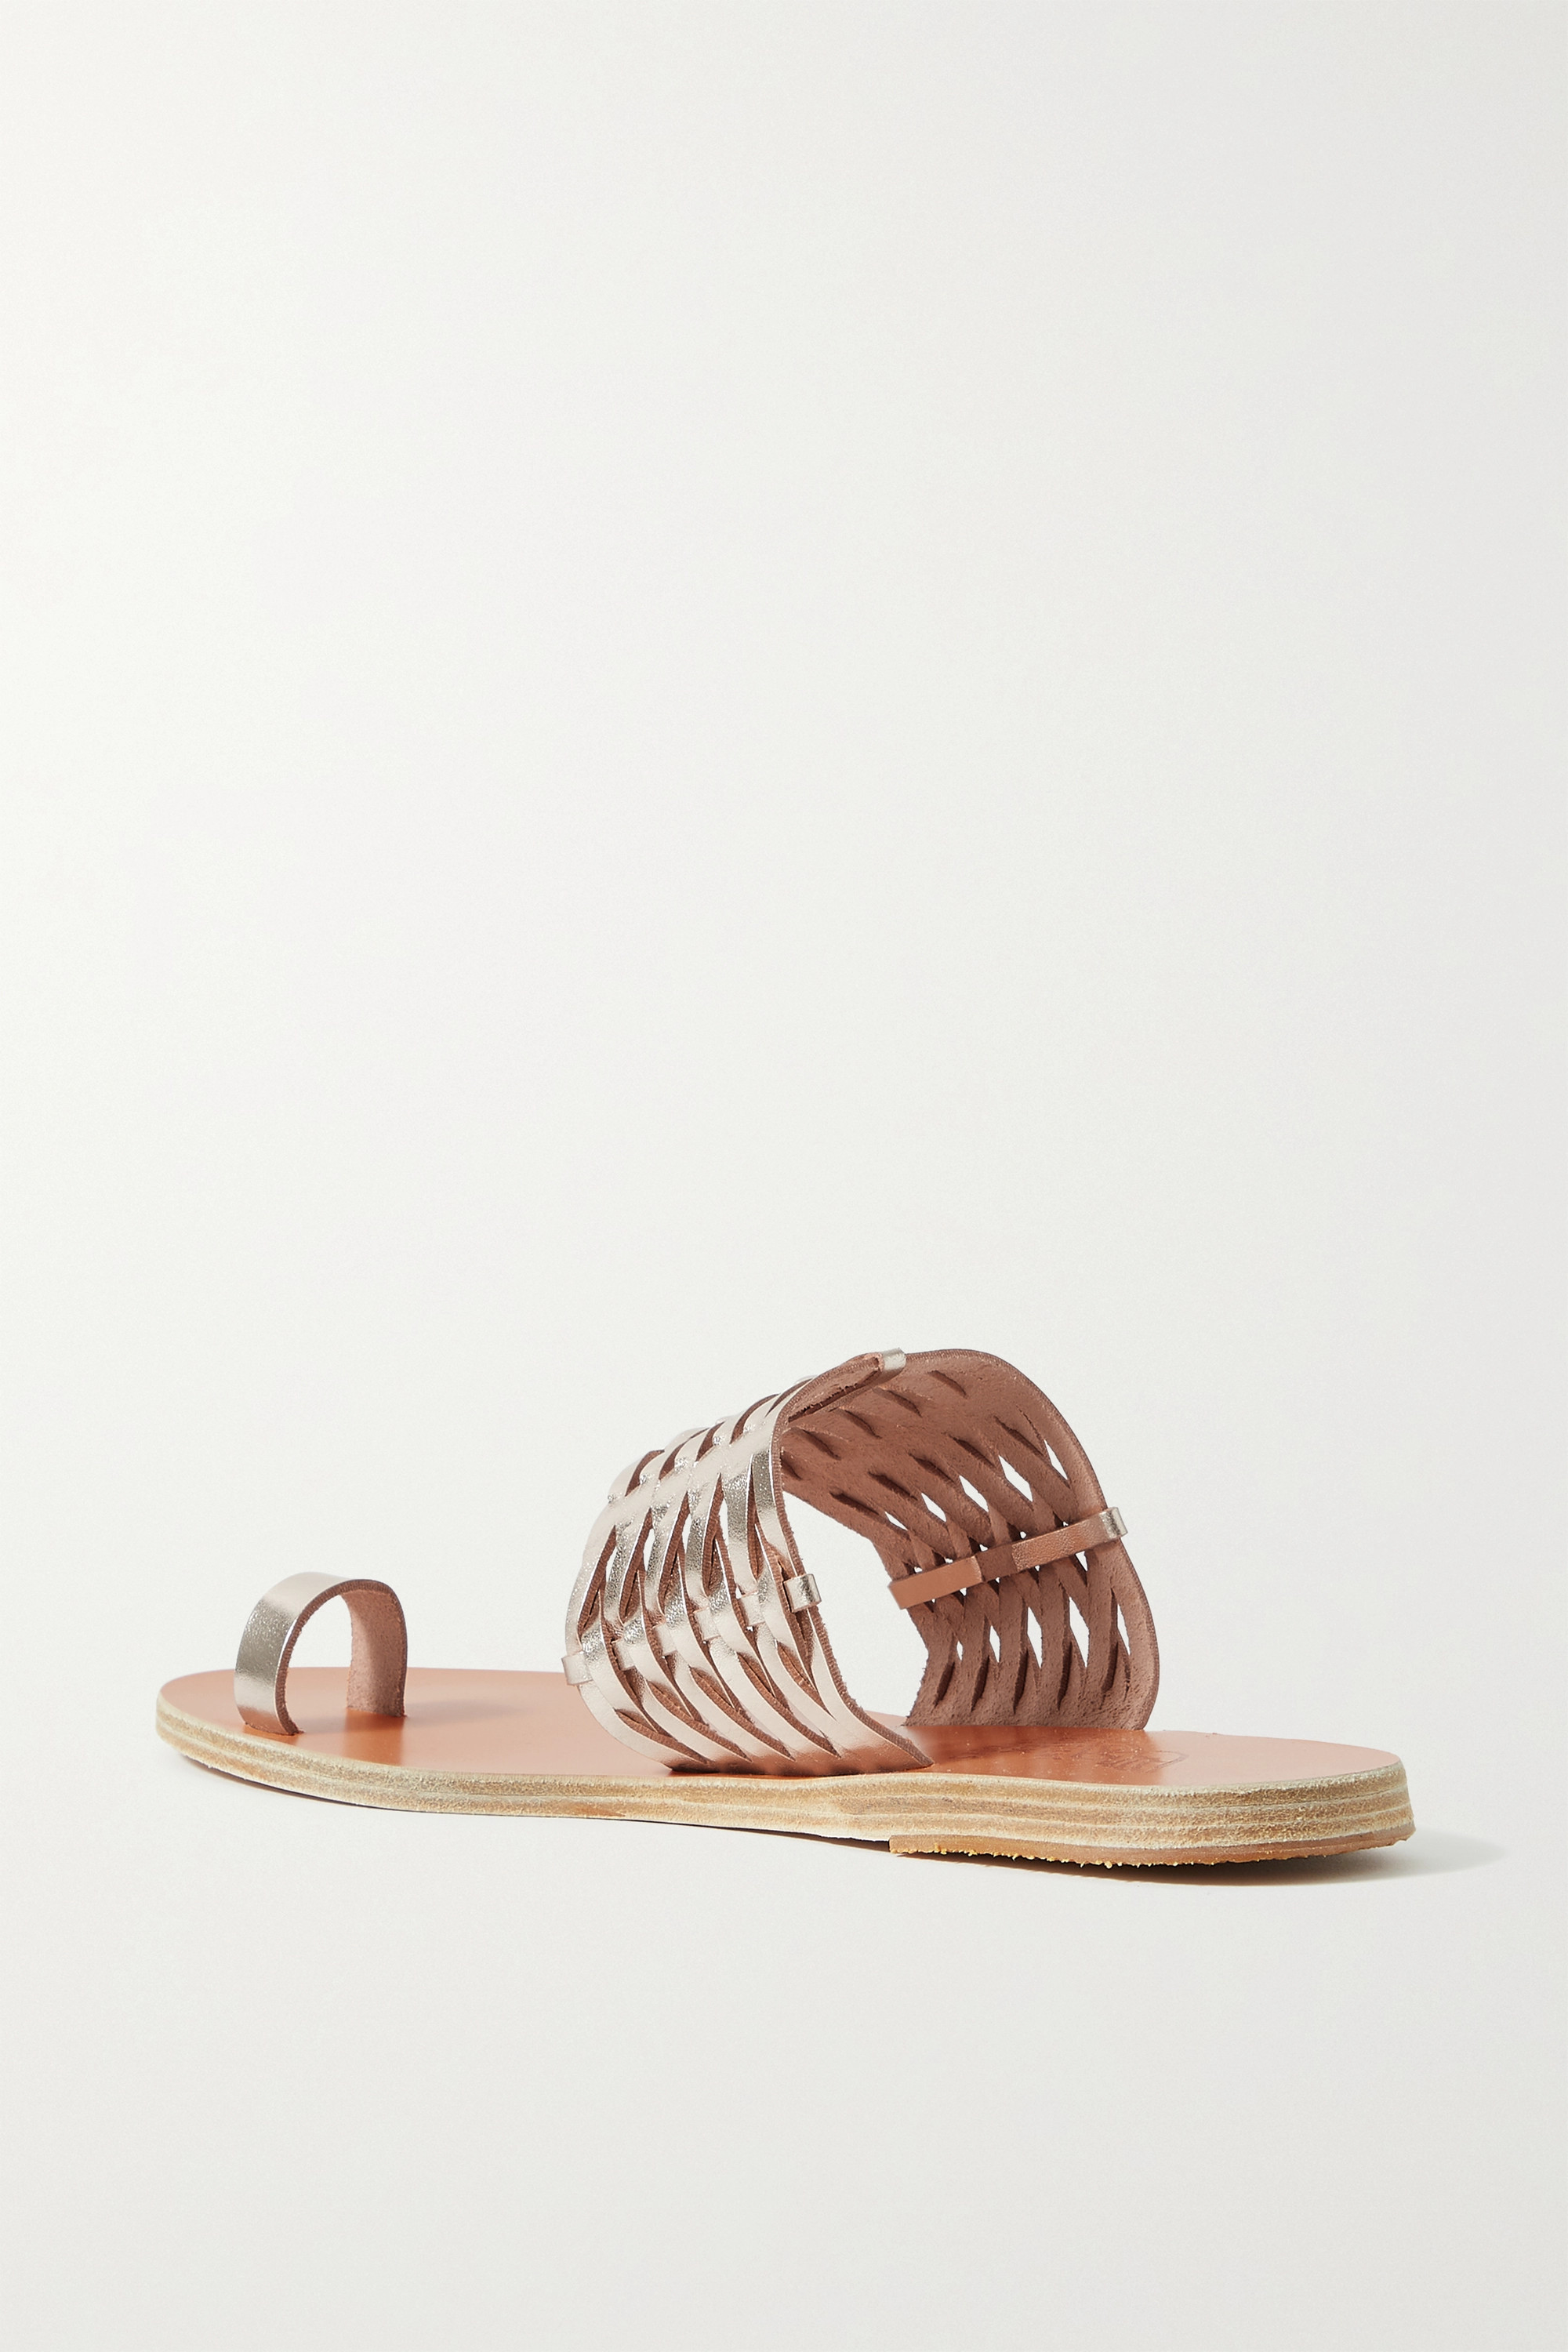 ANCIENT GREEK SANDALS Thalia woven metallic leather sandals